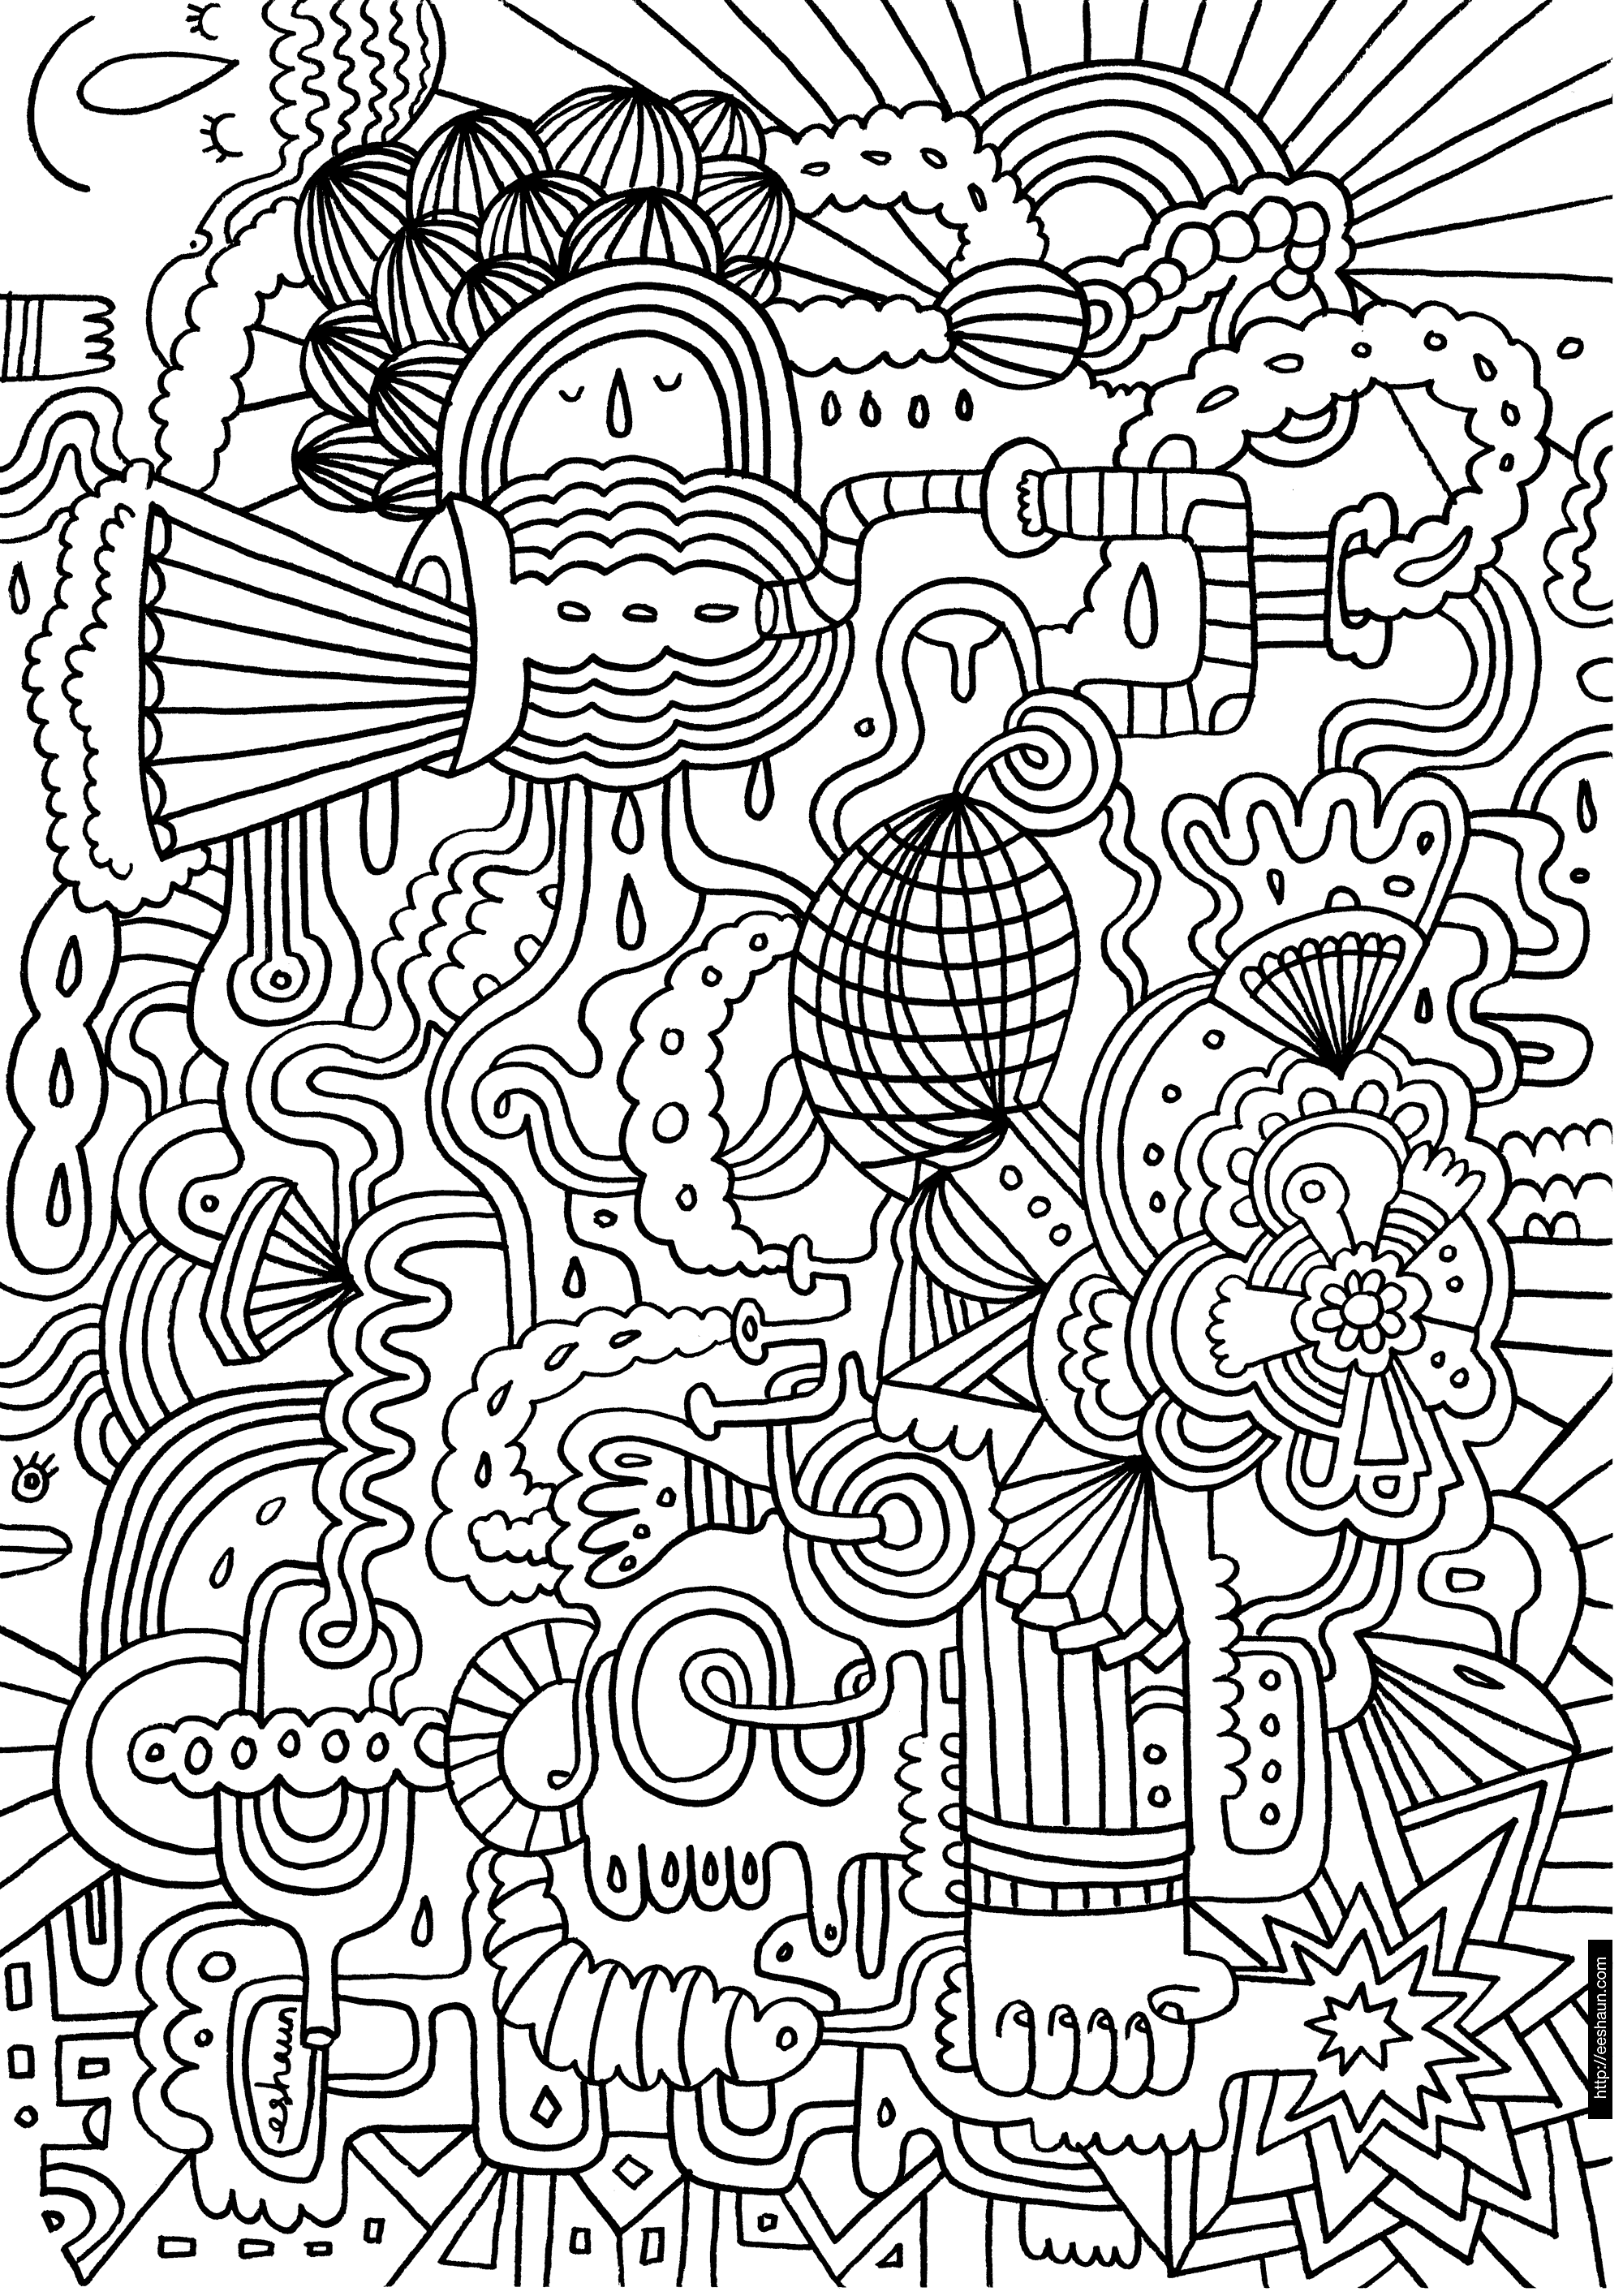 pattern coloring pages for adults hard coloring pages   Free Large Images | Adult Coloring Pages  pattern coloring pages for adults